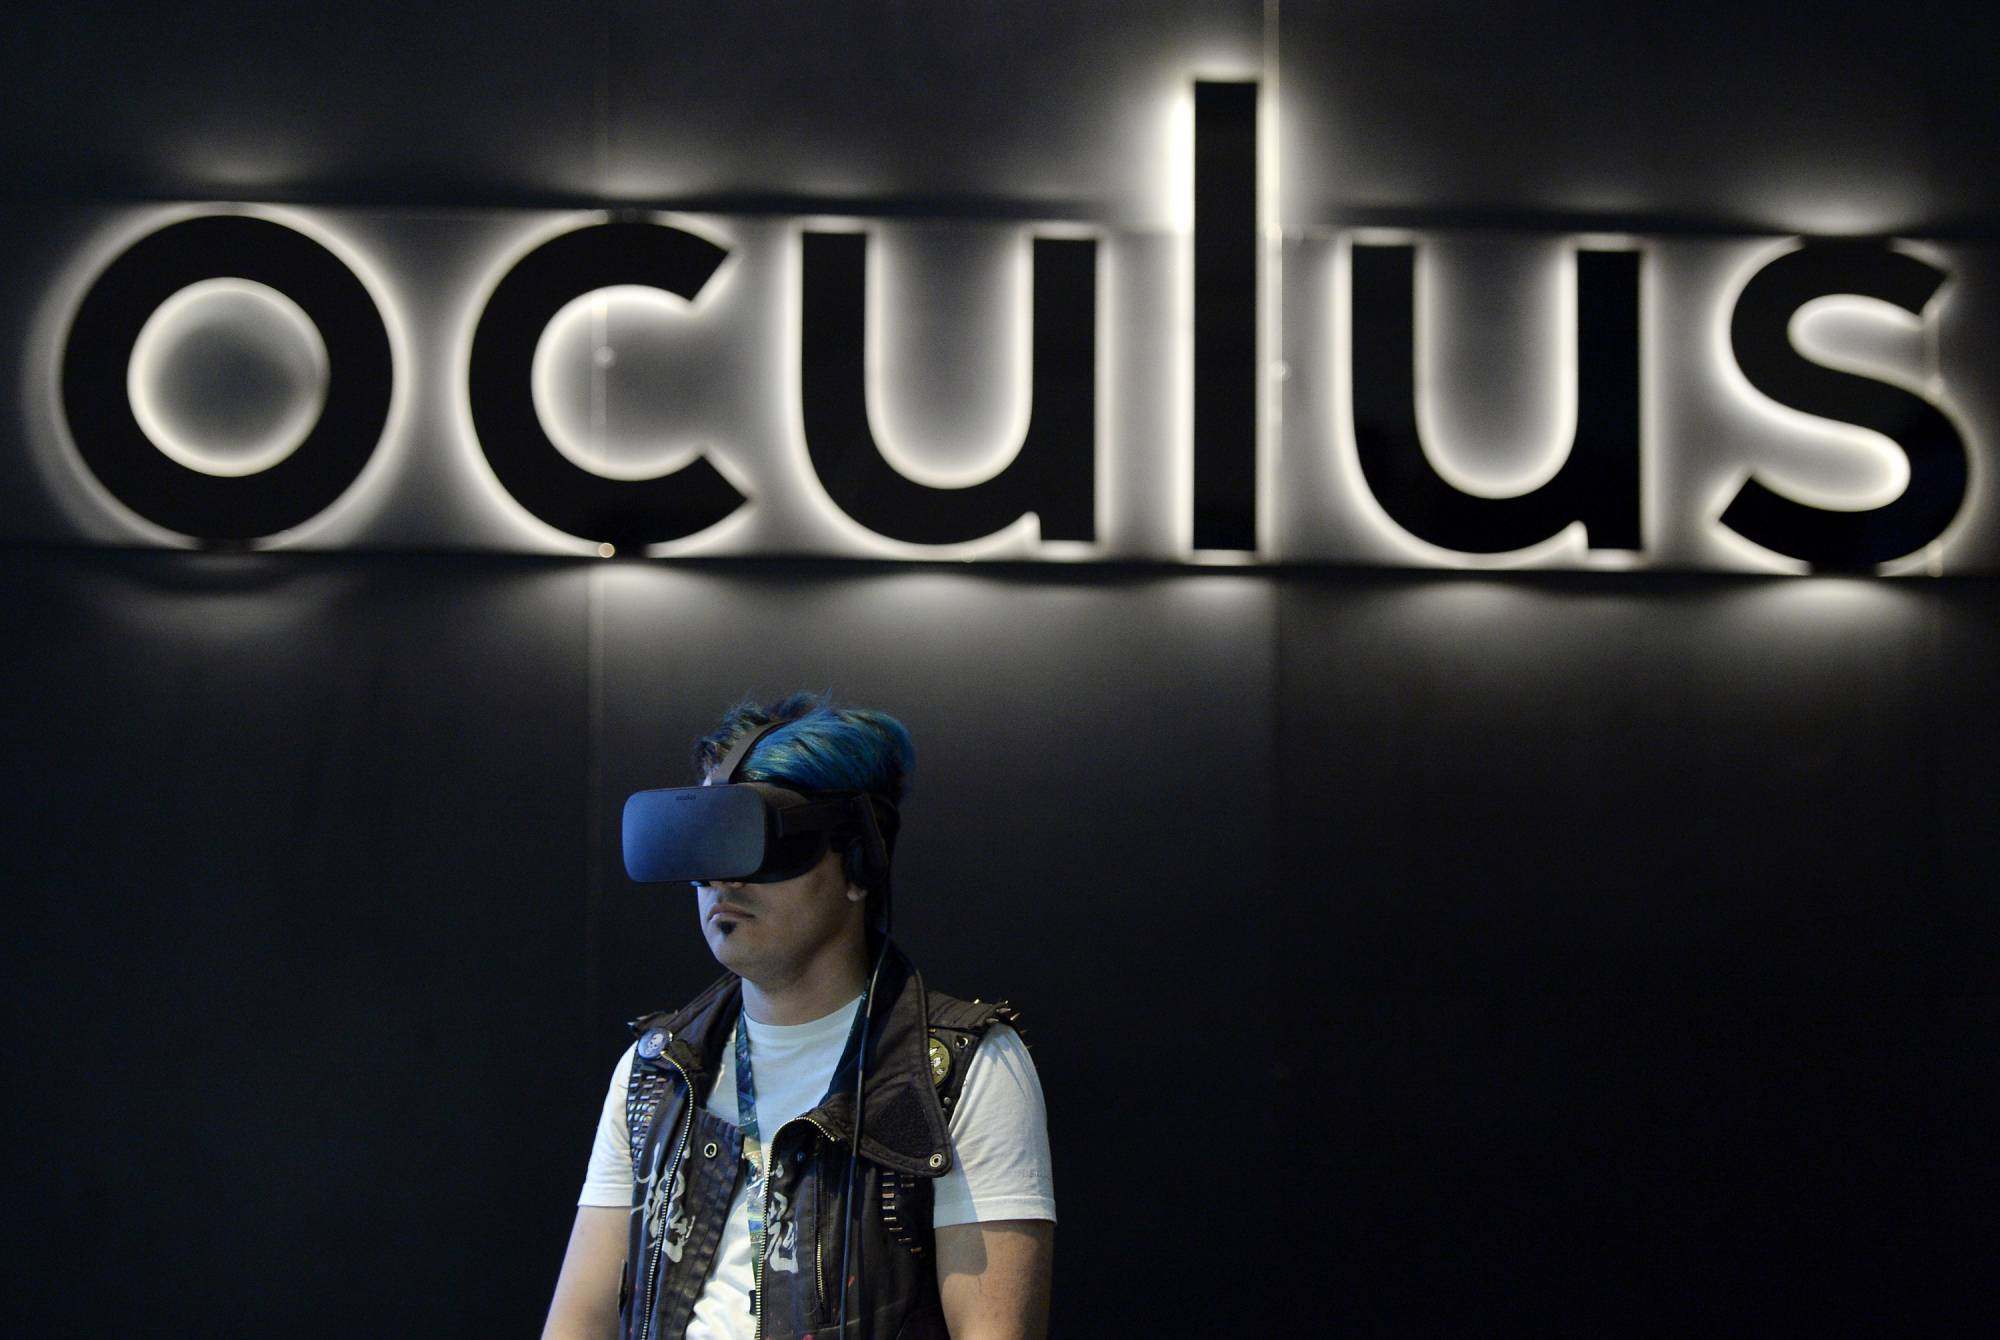 Facebook held its Oculus Connect conference in San Jose .